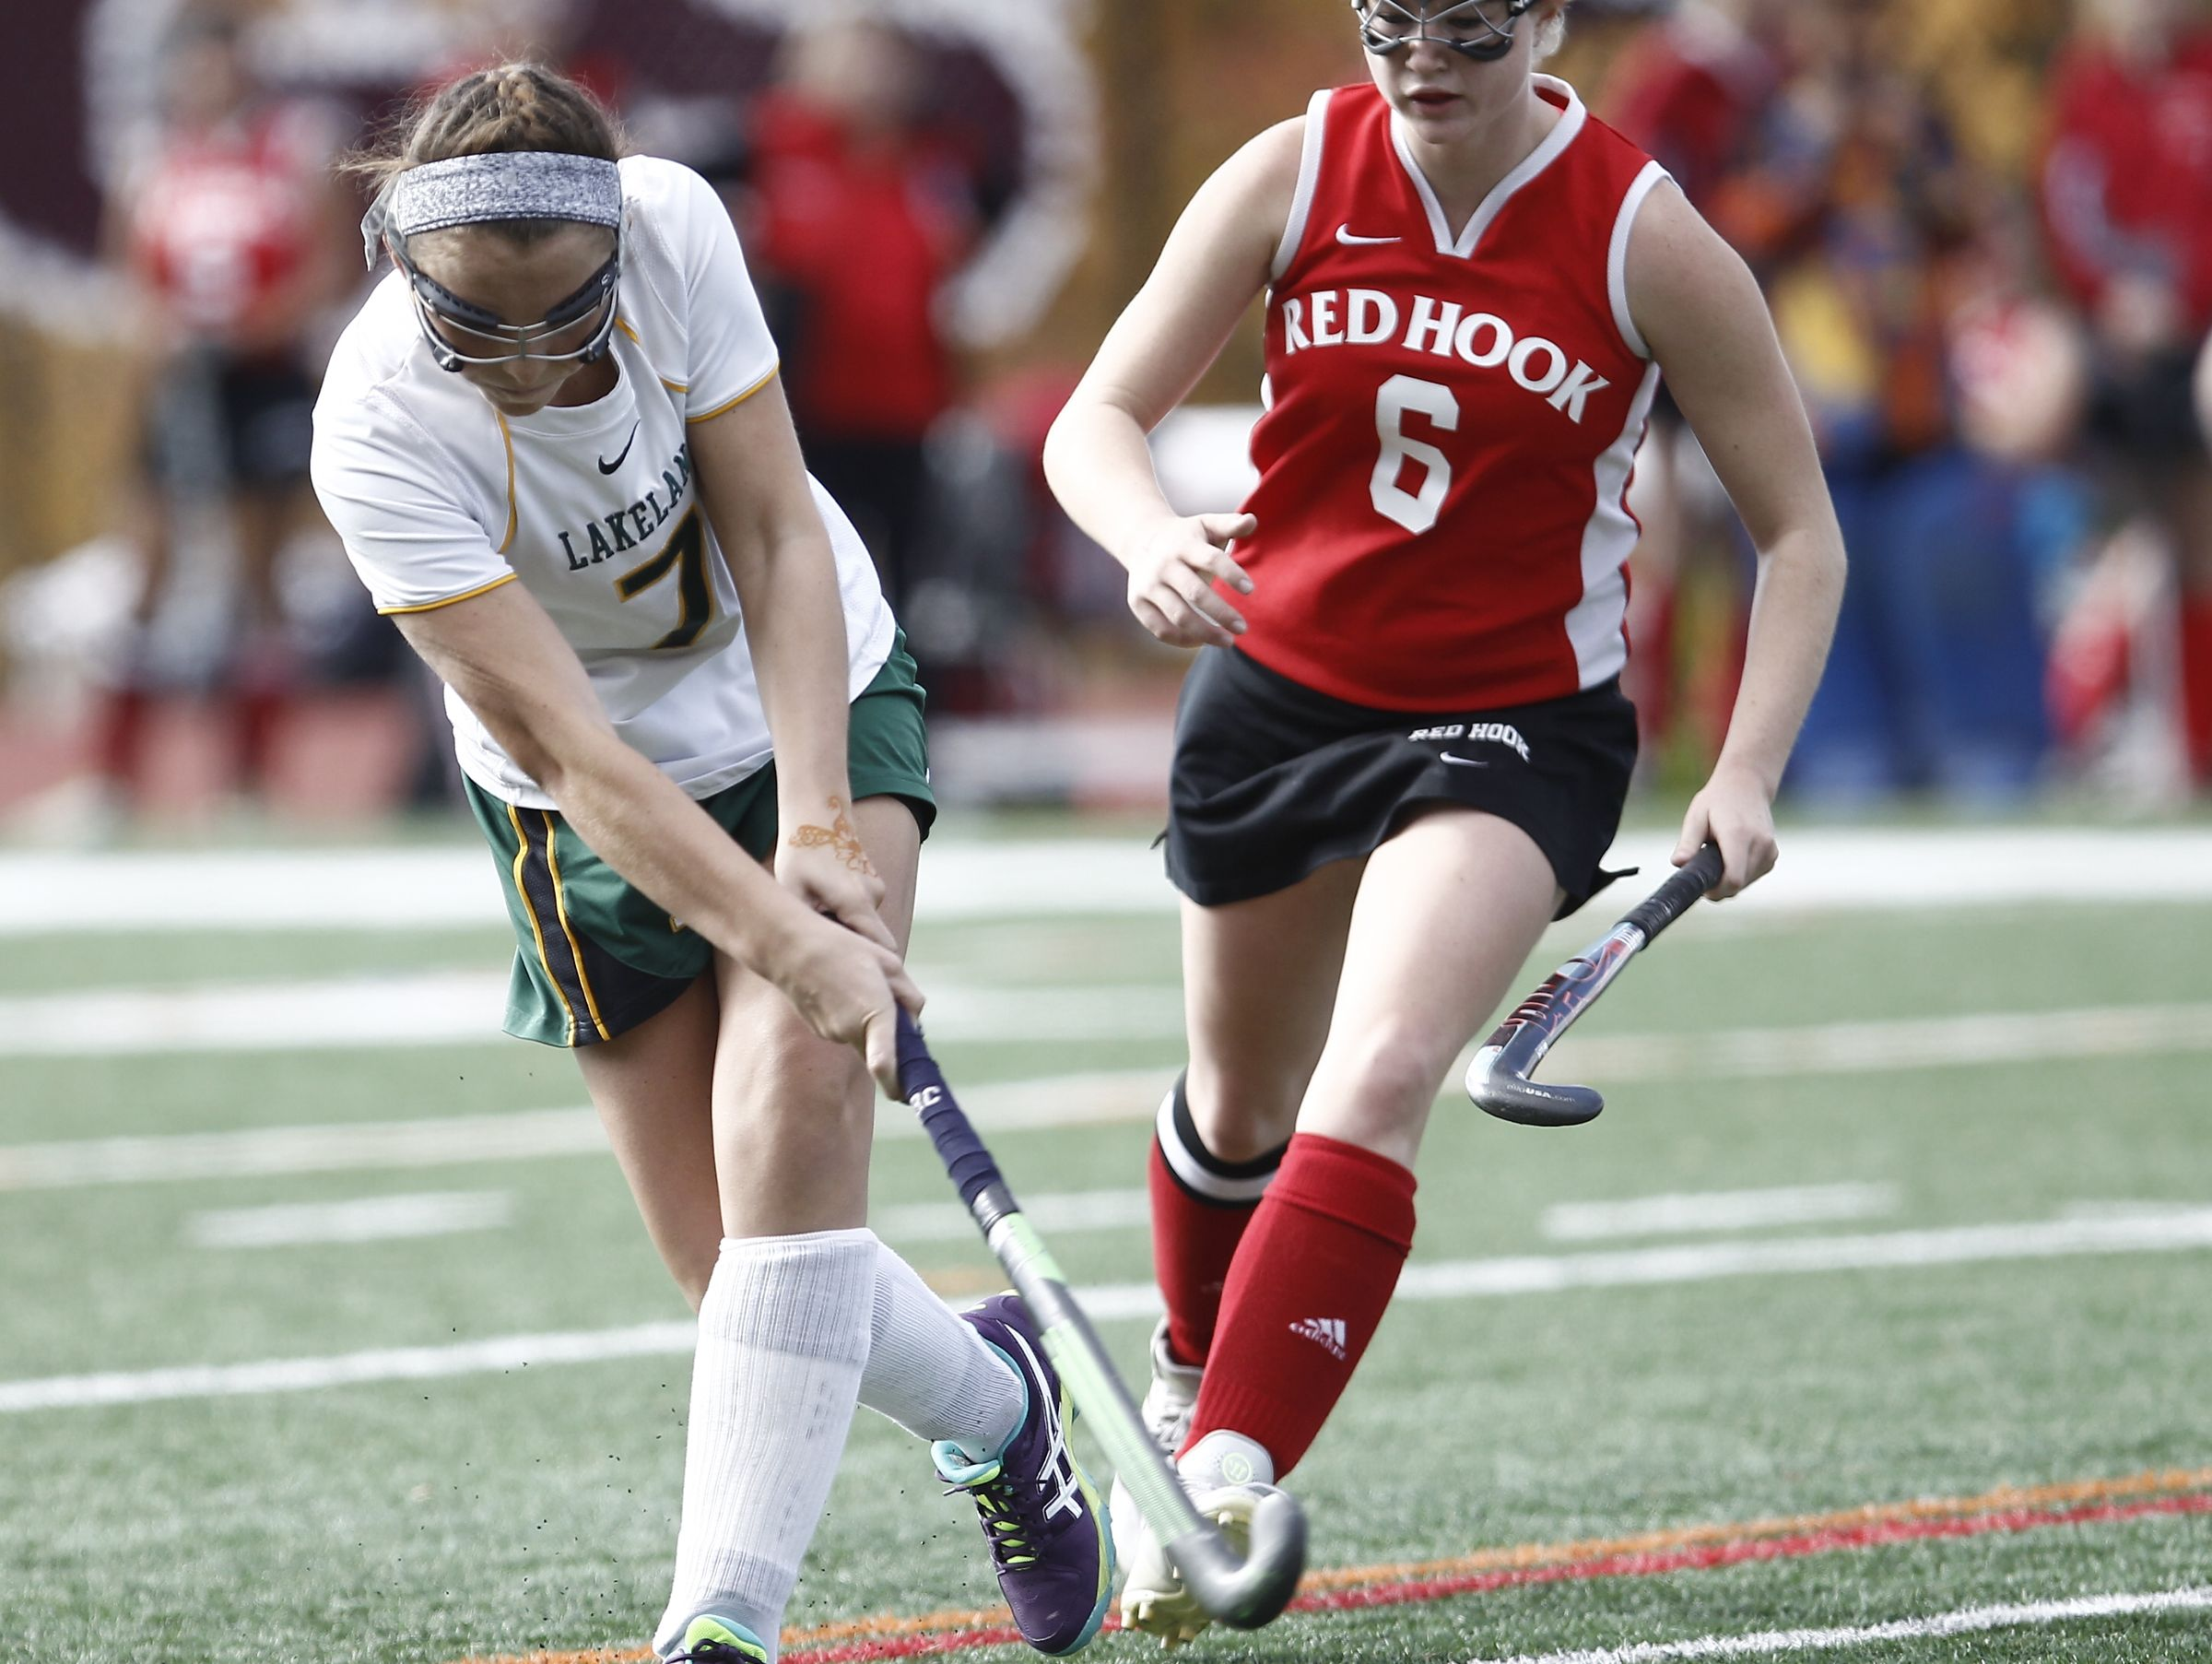 Lakeland's Caroline Cahill (7) takes a shot on goal during their 8-0 win over Red Hook in the Class B regional championship field hockey game at Valhalla High School on Saturday, November 5, 2016.